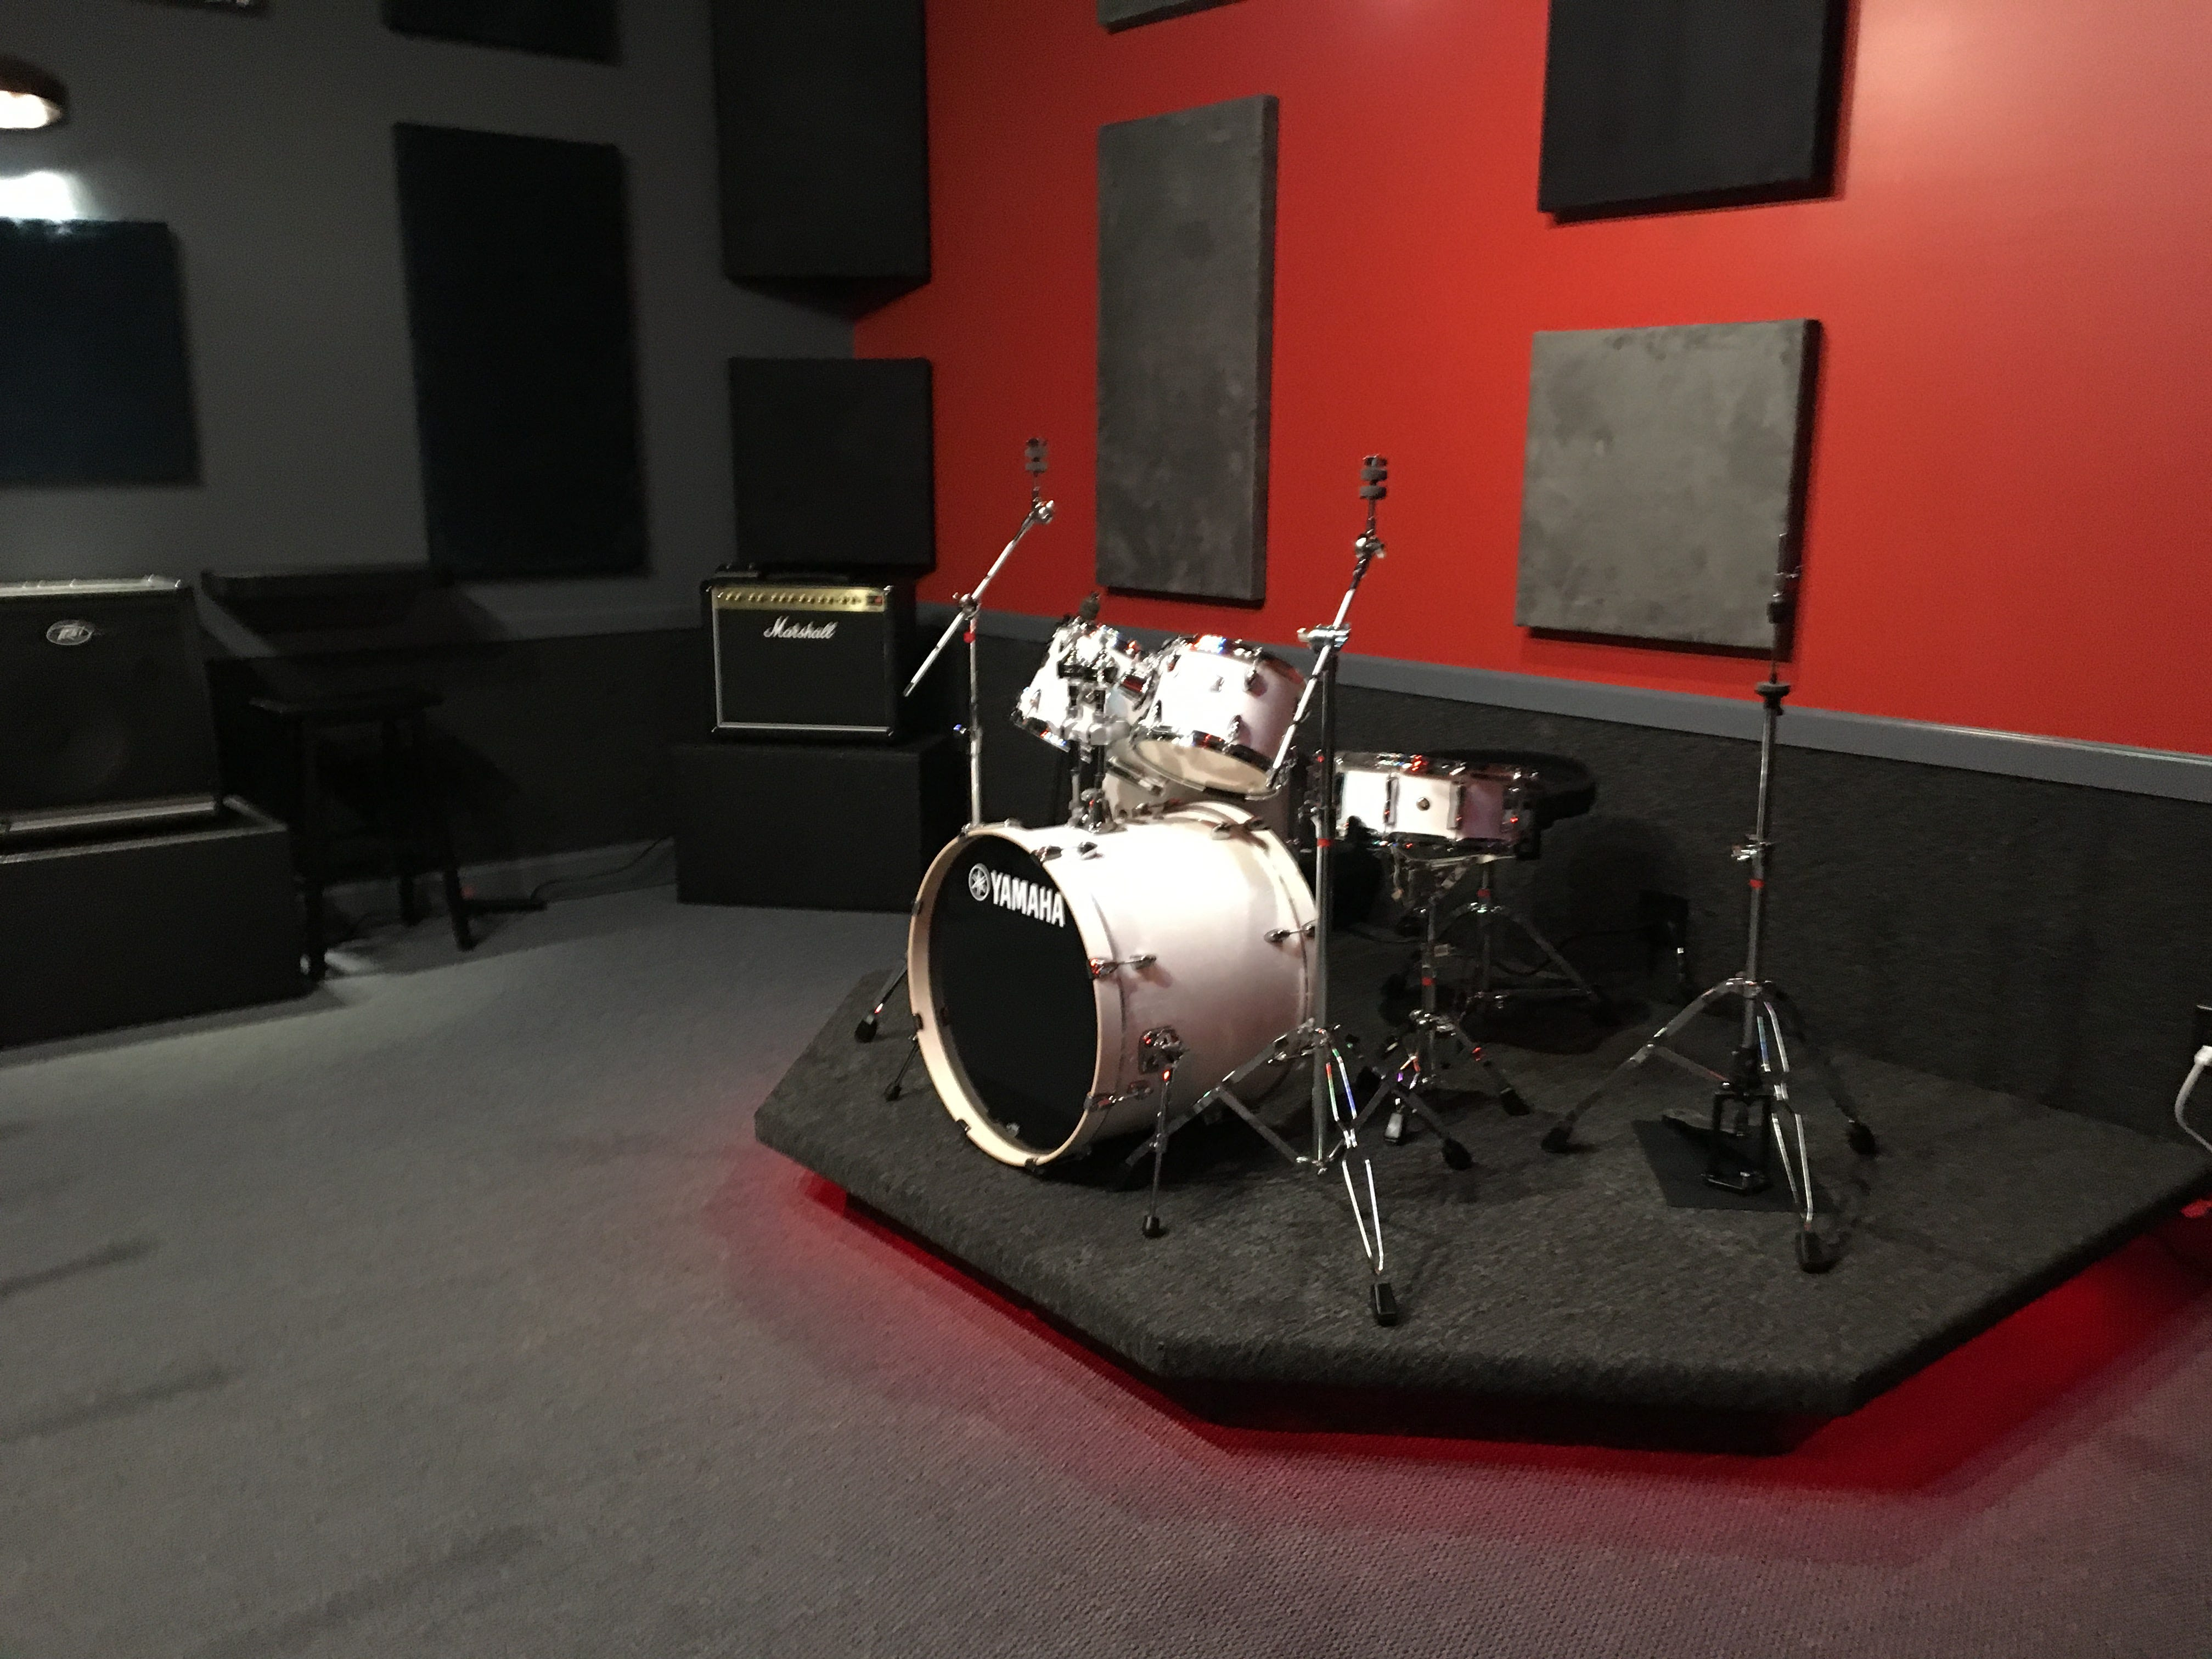 Ridenour Rehearsal Studios, 1203 Park Ave. in Murfreesboro, offers everything bands need to practice. There are five rehearsal rooms in varying sizes that bands can rent.